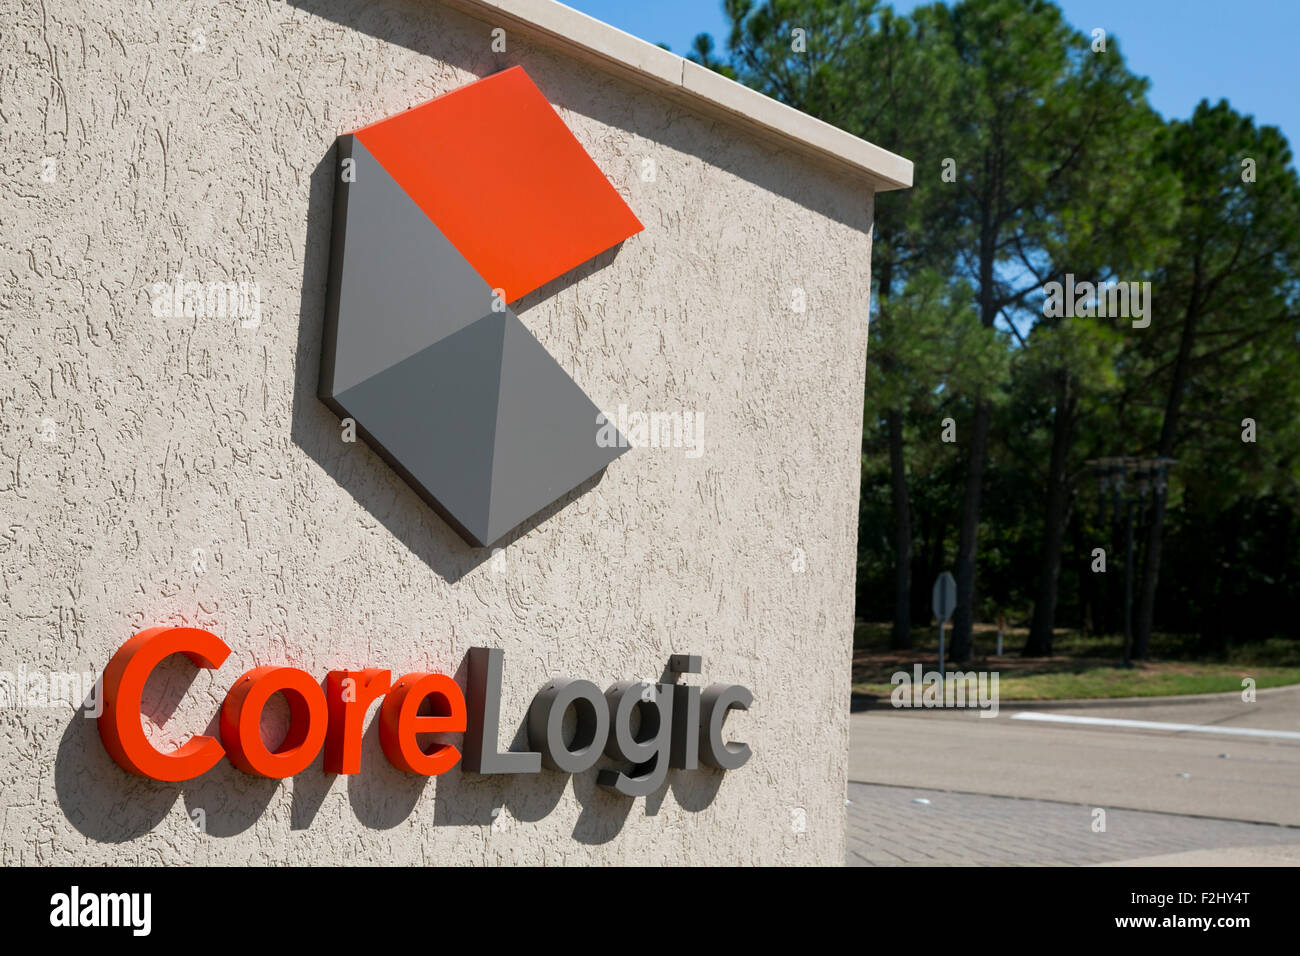 A logo sign outside of a facility occupied by CoreLogic, Inc., in Westlake, Texas on September 13, 2015. - Stock Image